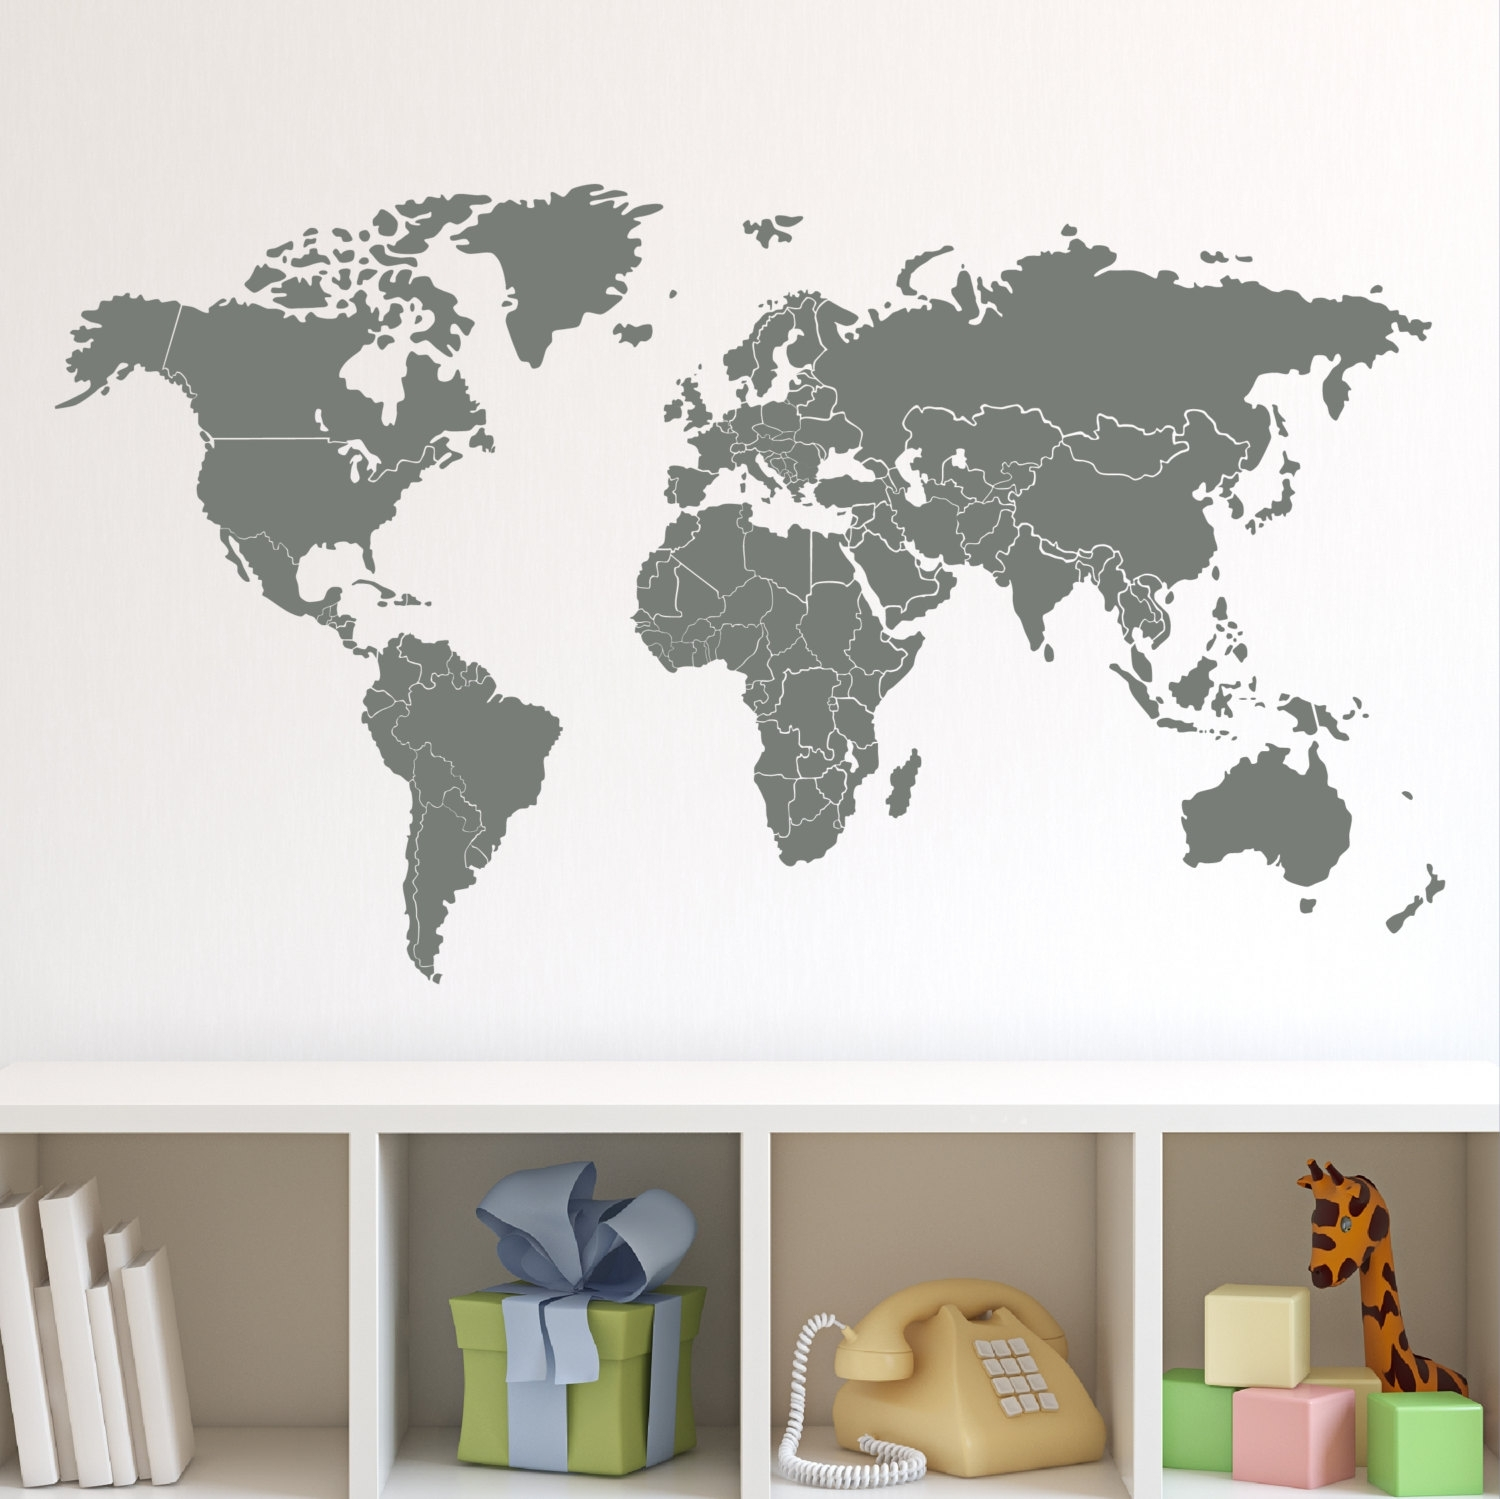 Nice World Map Wall Decals – Home Design #940 With Regard To Current Vinyl Wall Art World Map (View 11 of 20)